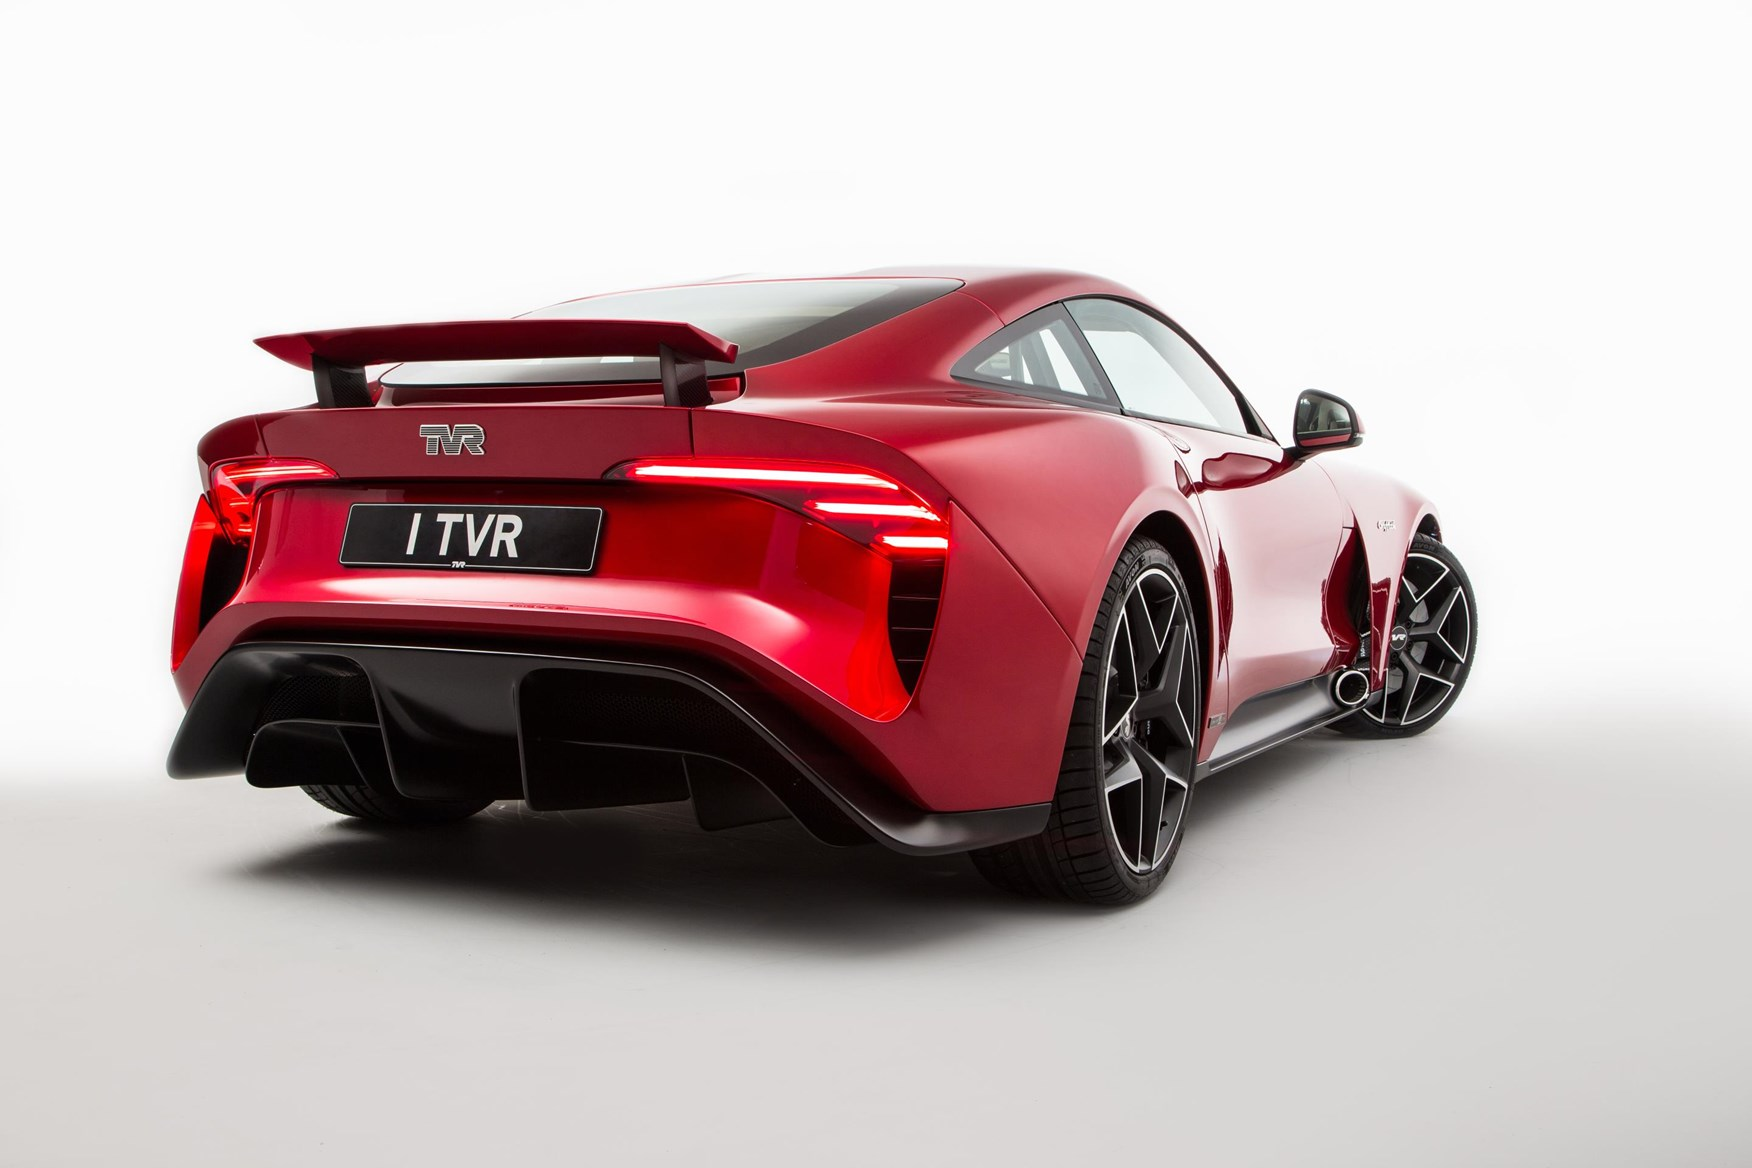 From Around 90 000 The Tvr Griffith Is Unveiled To World At Goodwood Revival In September 2017